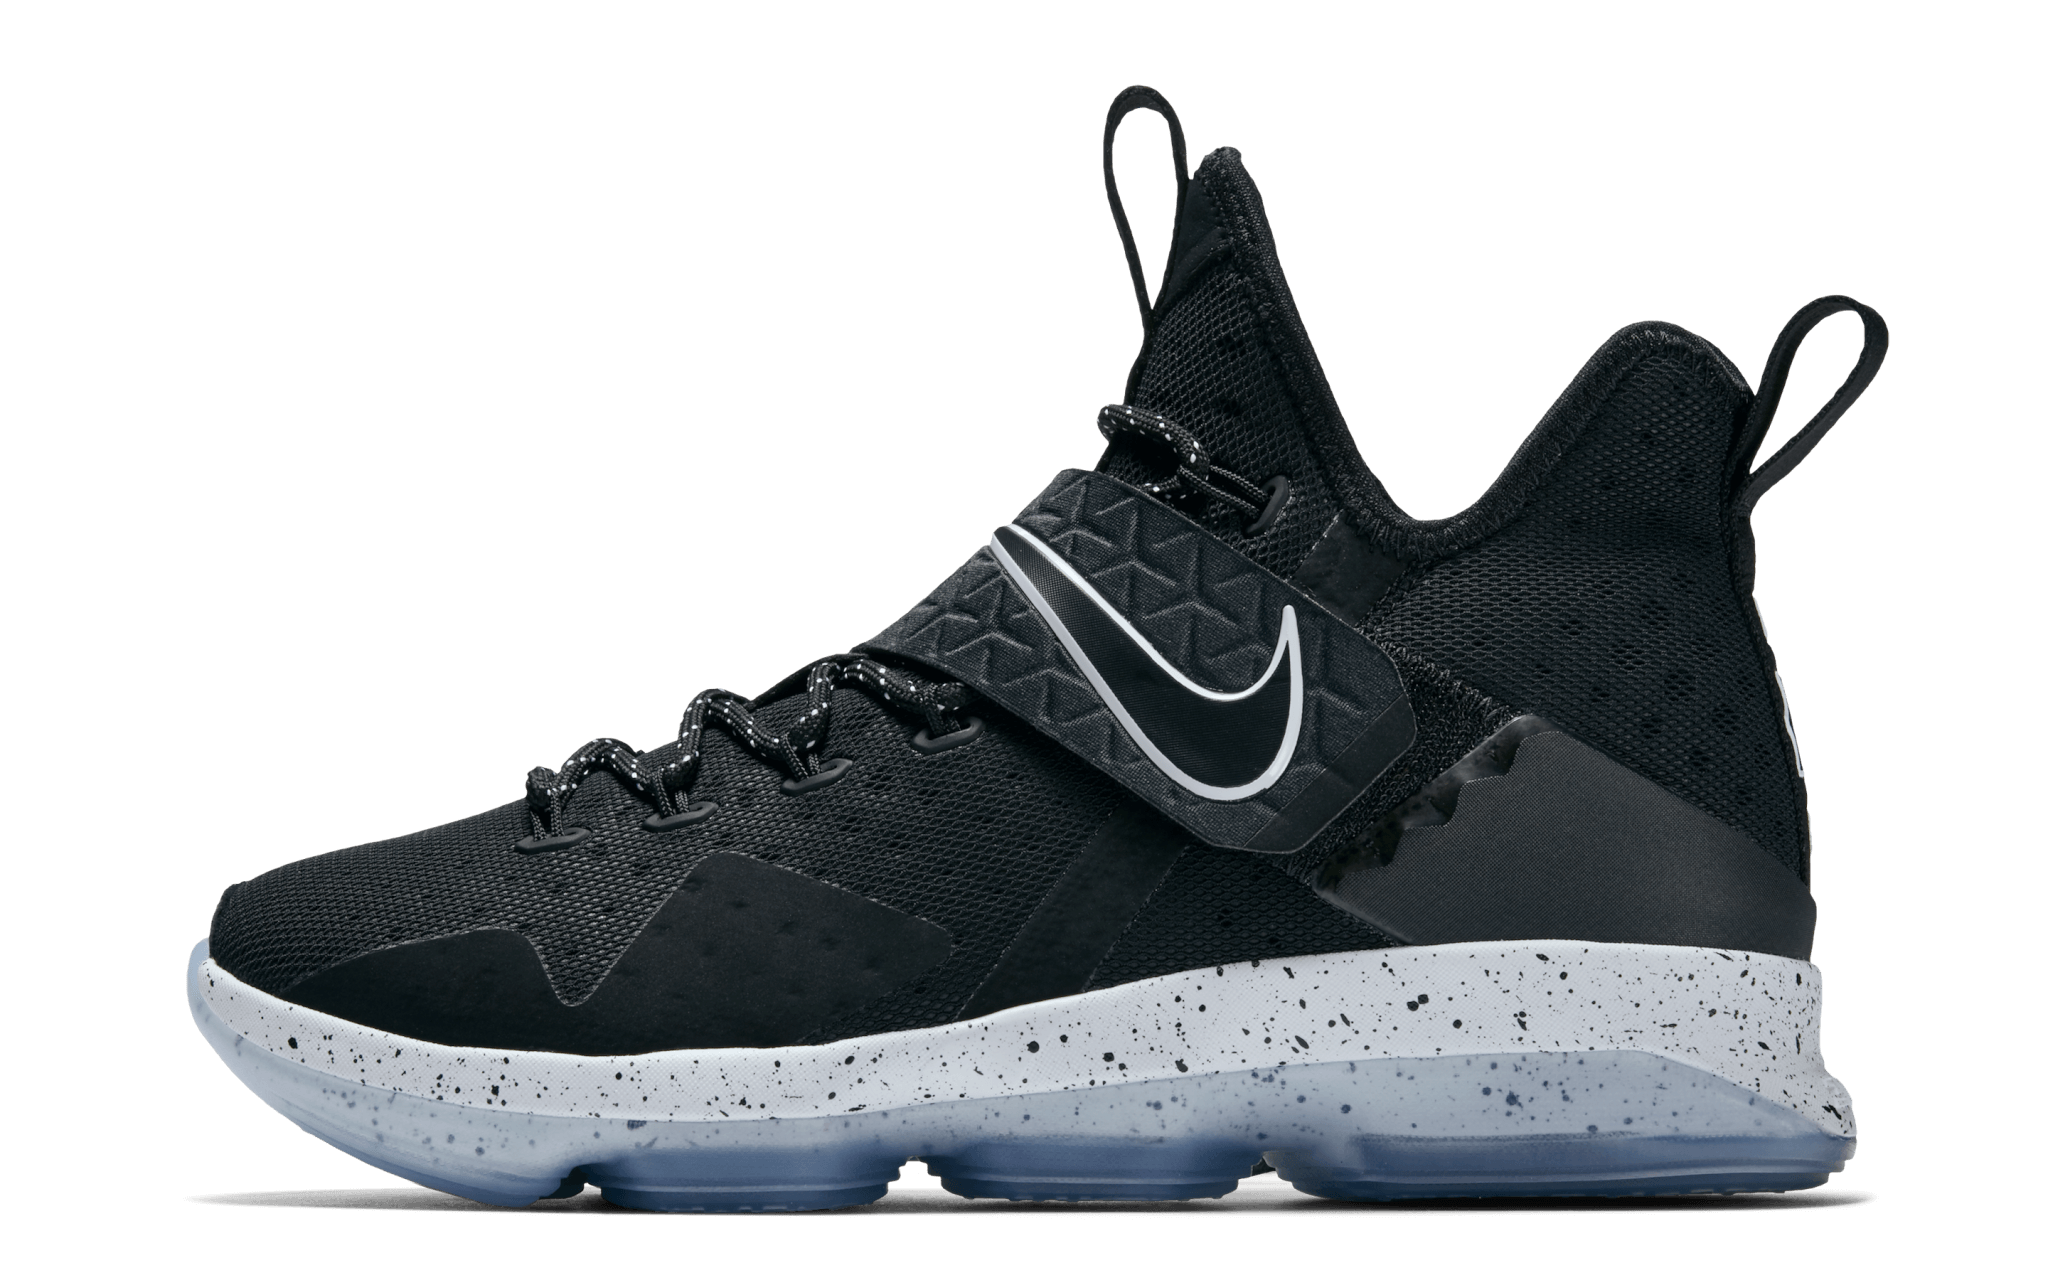 d9d705af33ea7 Nike Lebron 14 Performance Review